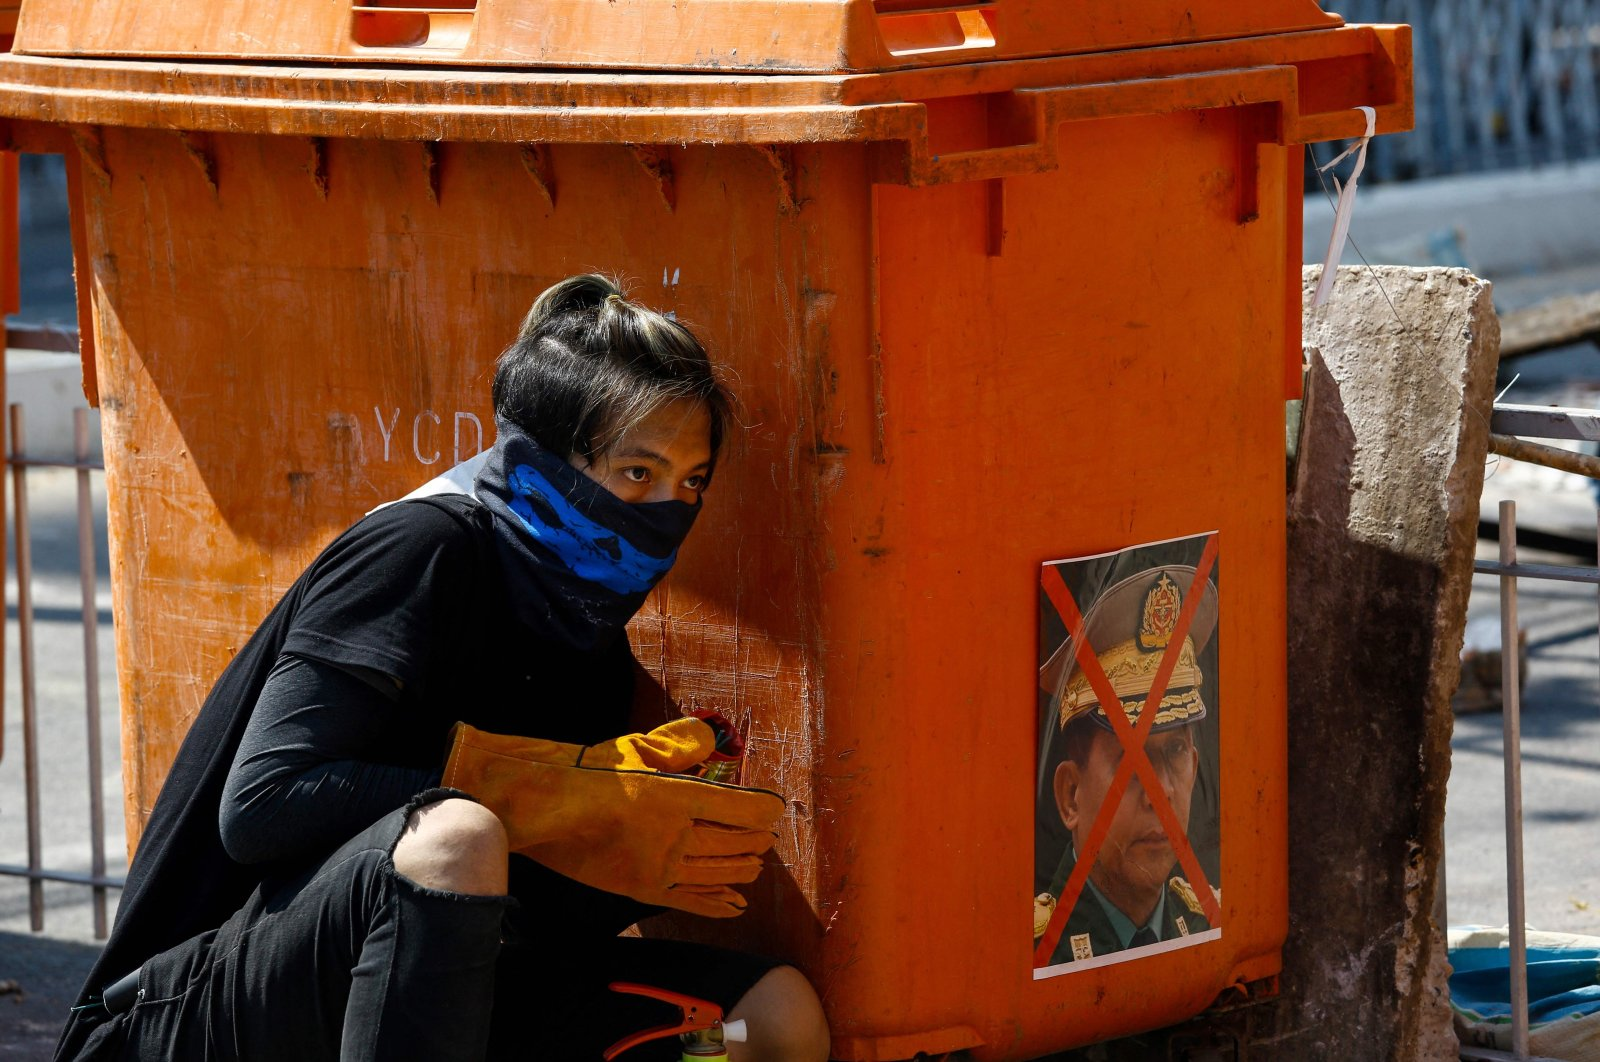 A protester takes shelter behind a rubbish bin adorned with an image of Myanmar armed forces chief Senior General Min Aung Hlaing during a demonstration against the military coup in Yangon, Myanmar, March 8, 2021. (AFP Photo)